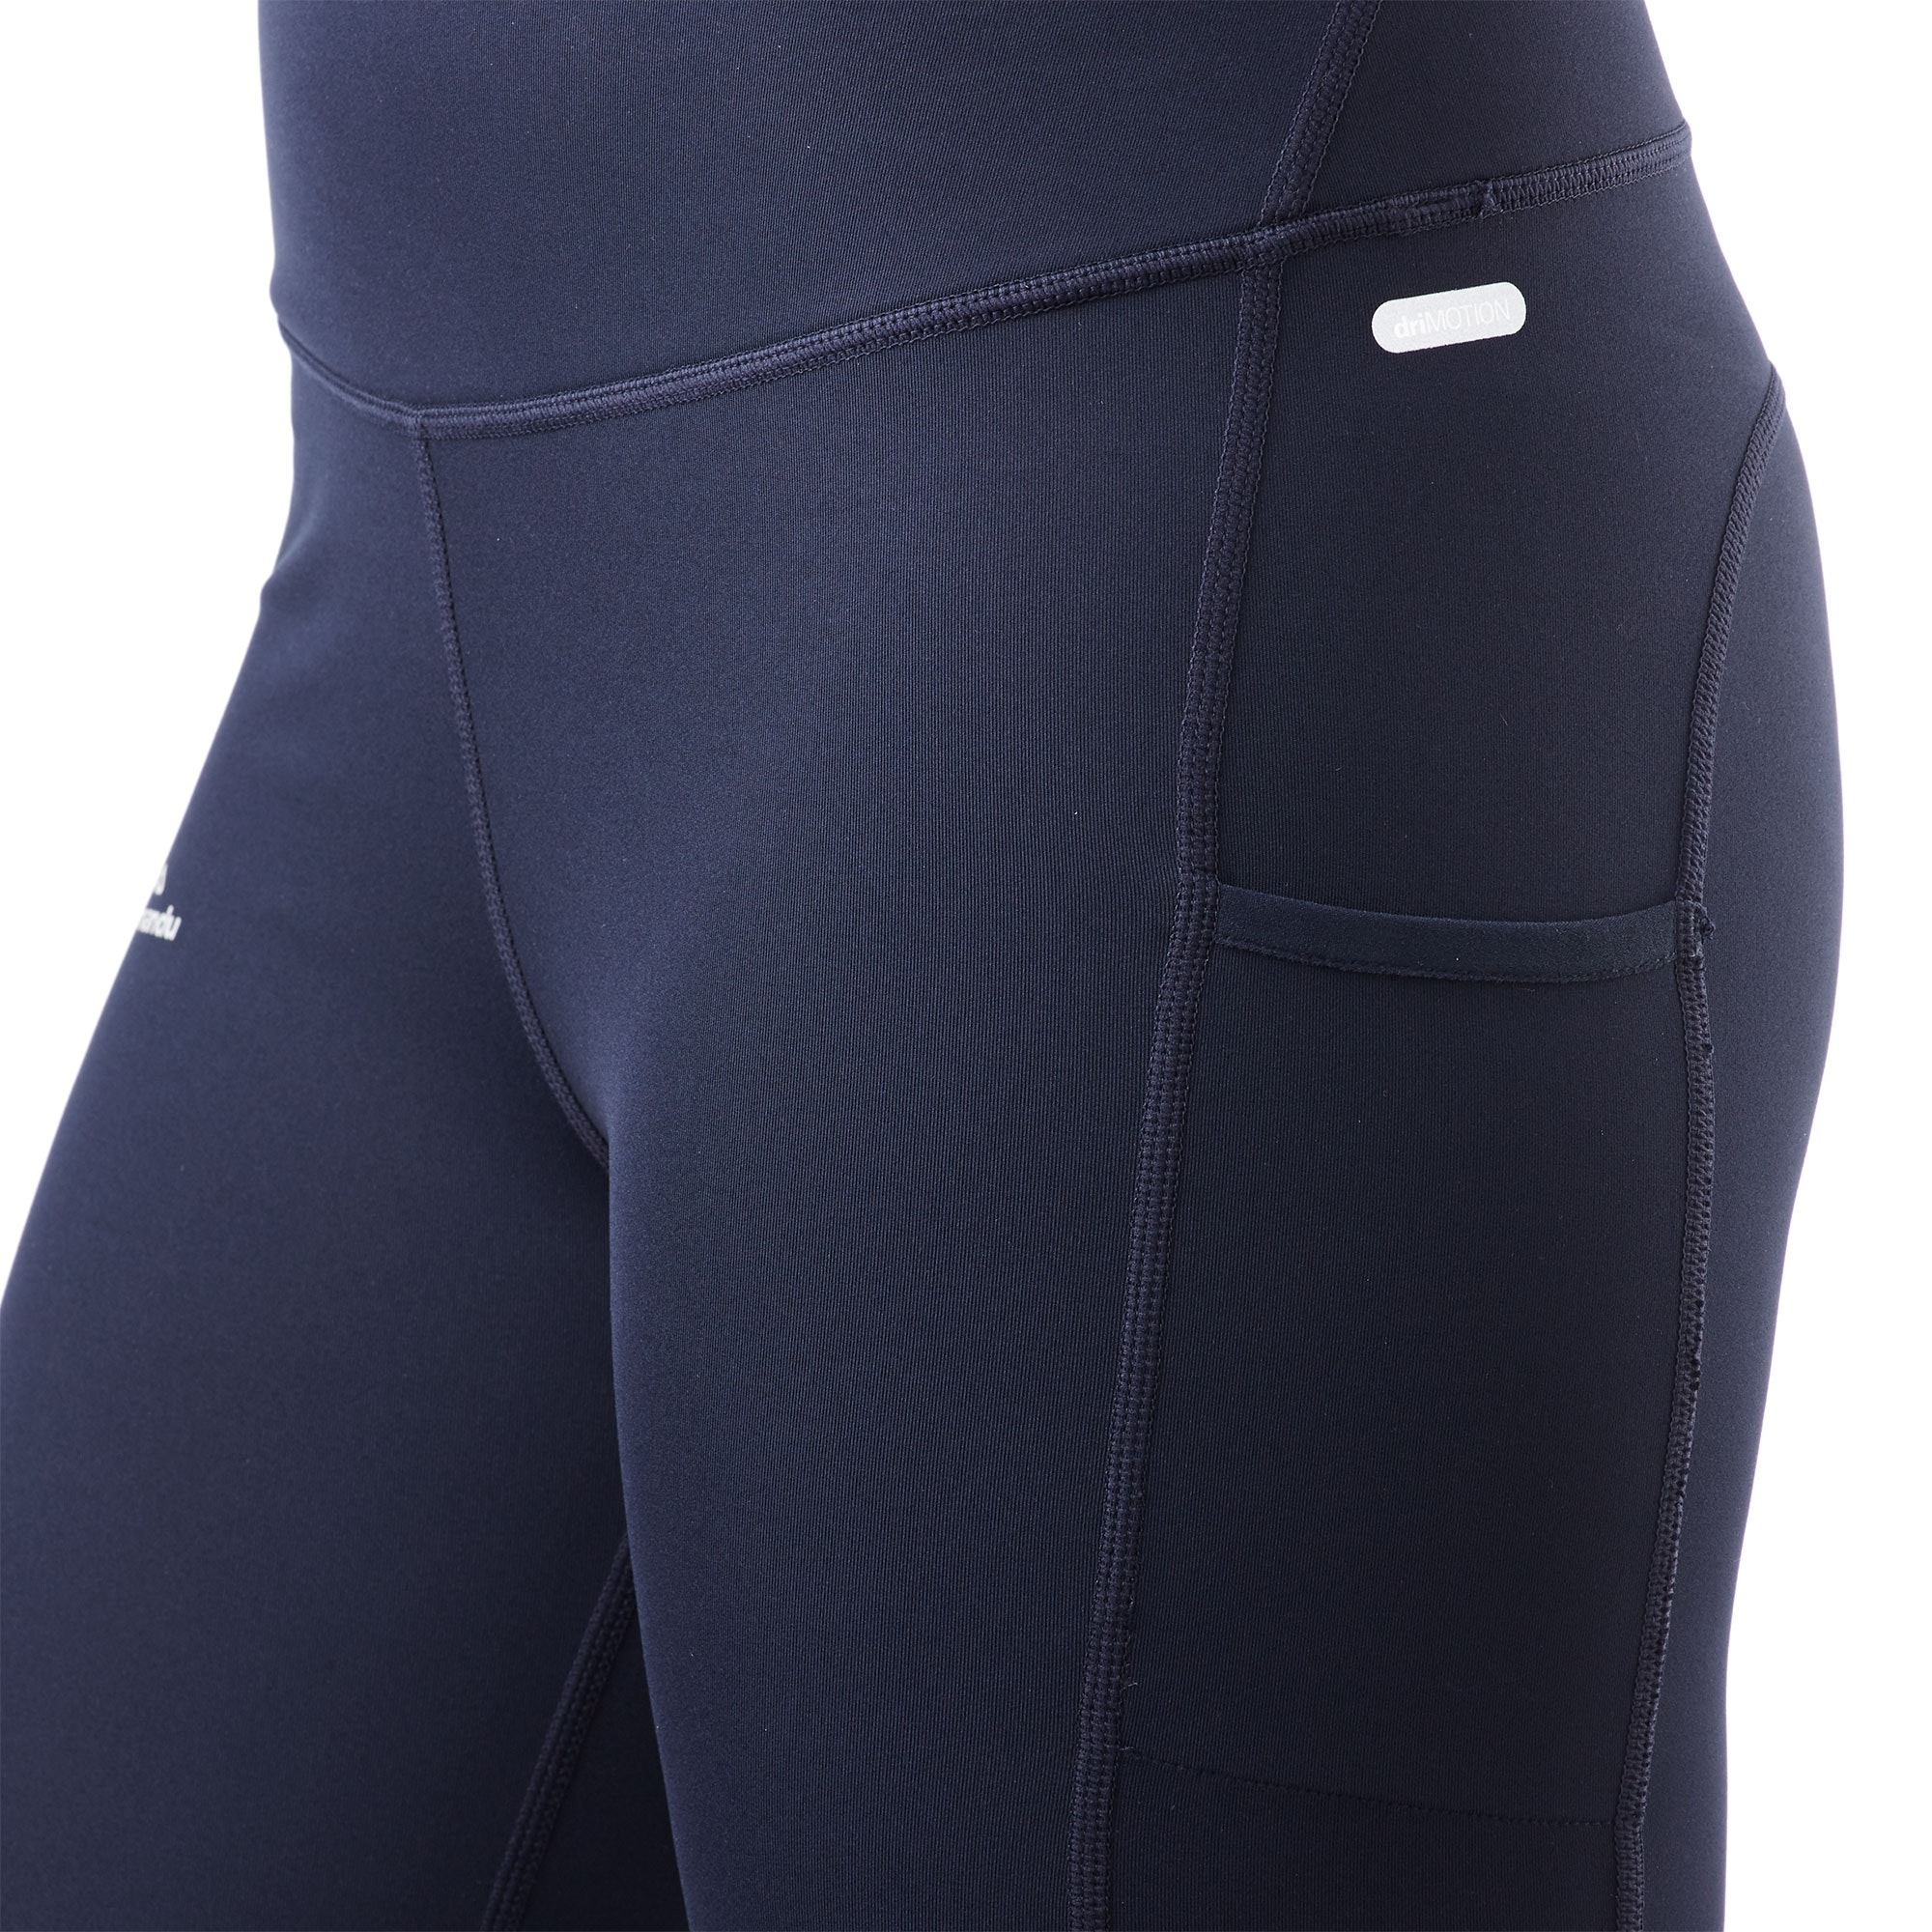 NEW-Kathmandu-Zeolite-Women-039-s-Active-Performance-3-4-Leggings thumbnail 21